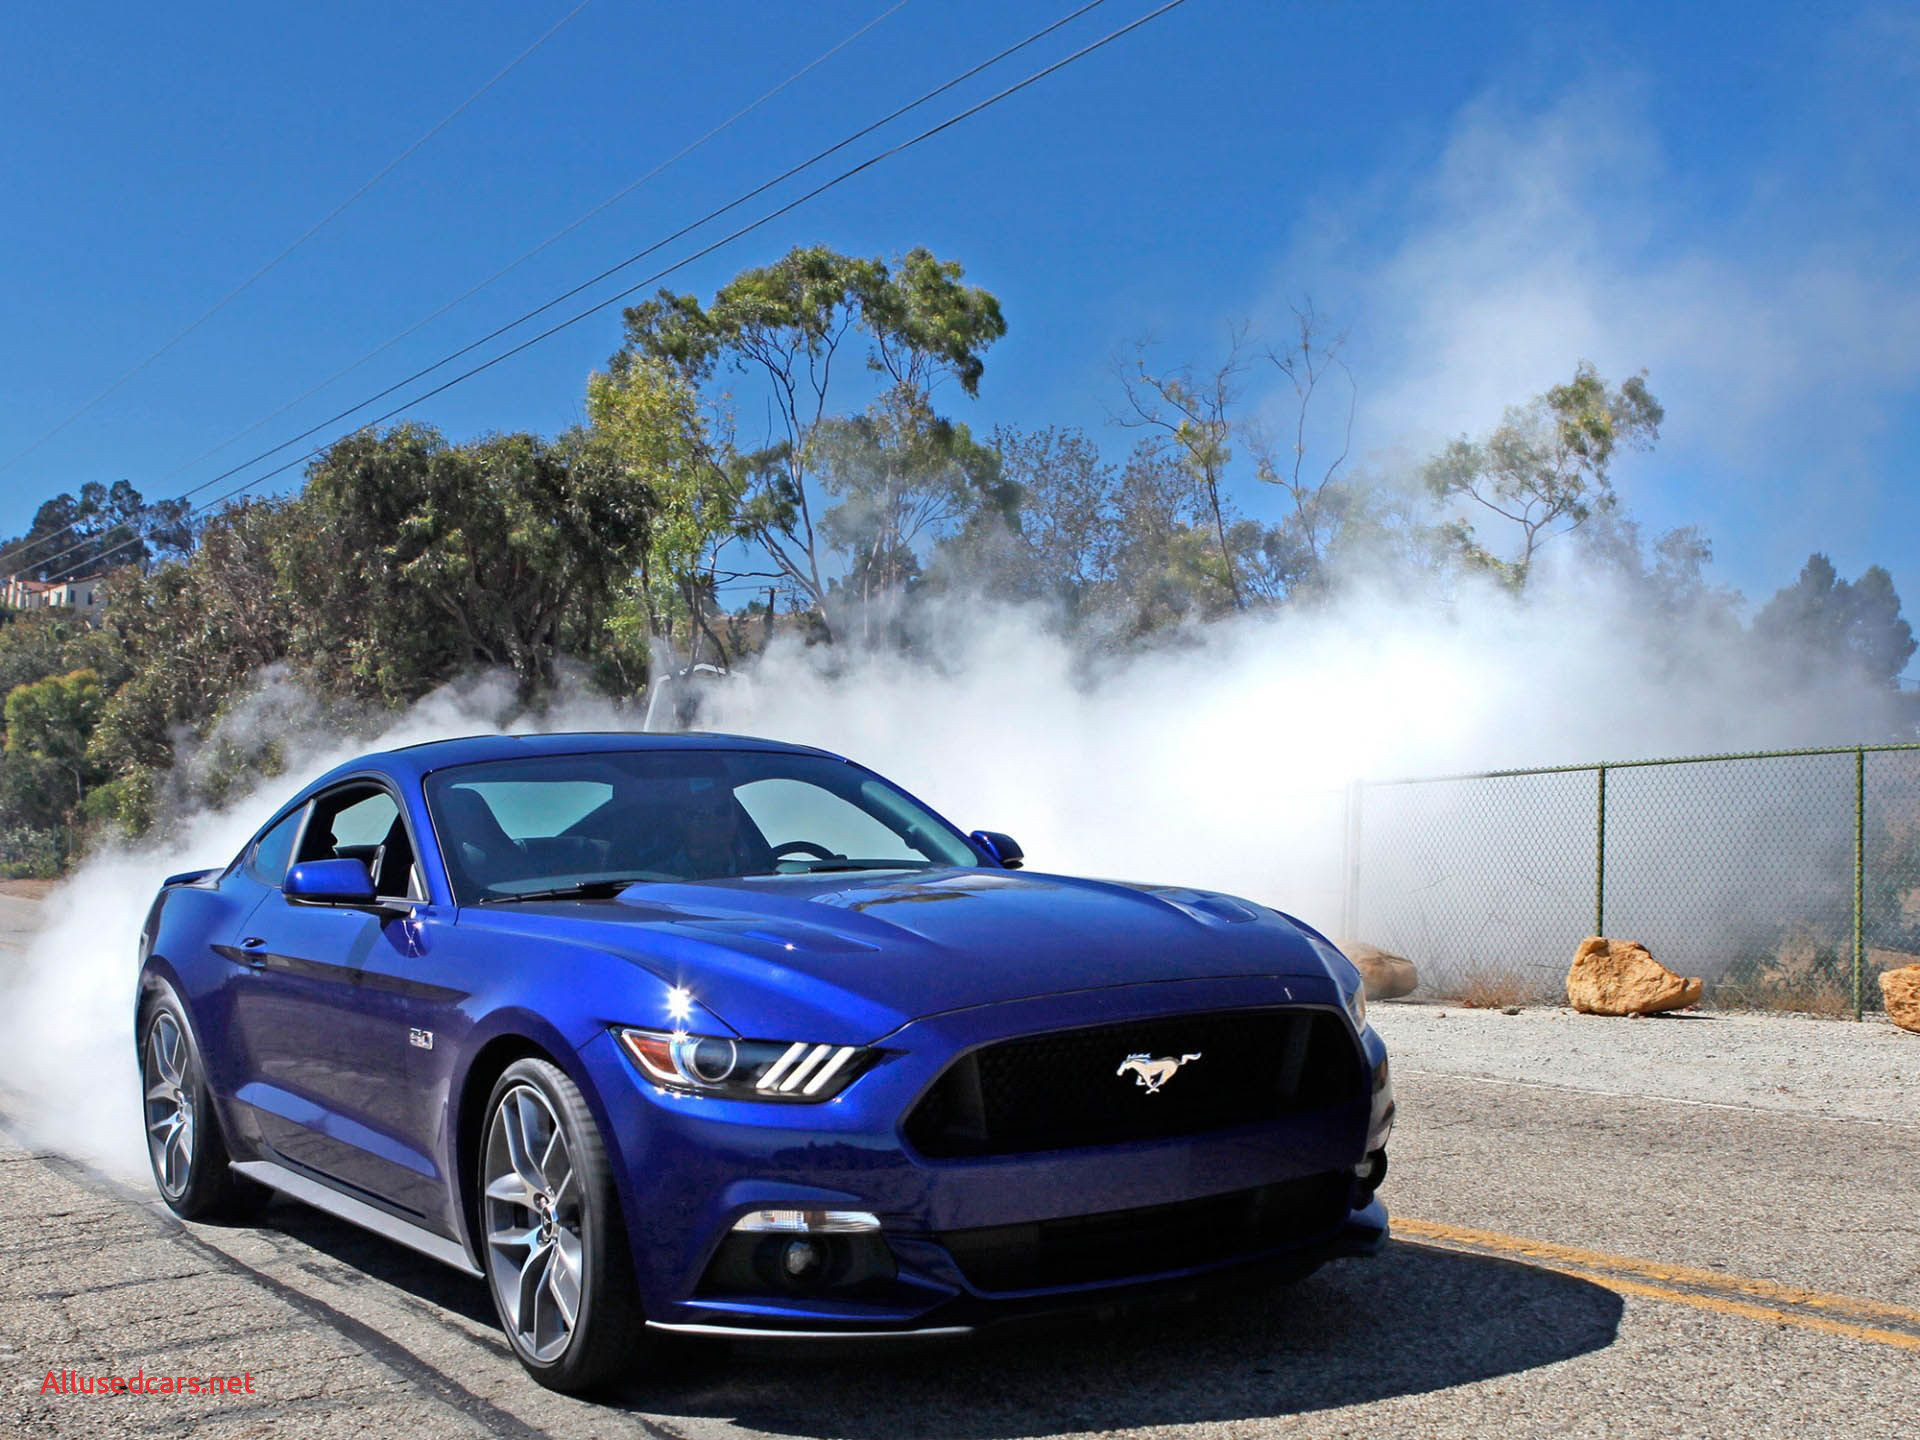 2015 ford Mustang Gt Inspirational 2015 ford Mustang Gt Blue Hd Wallpaper